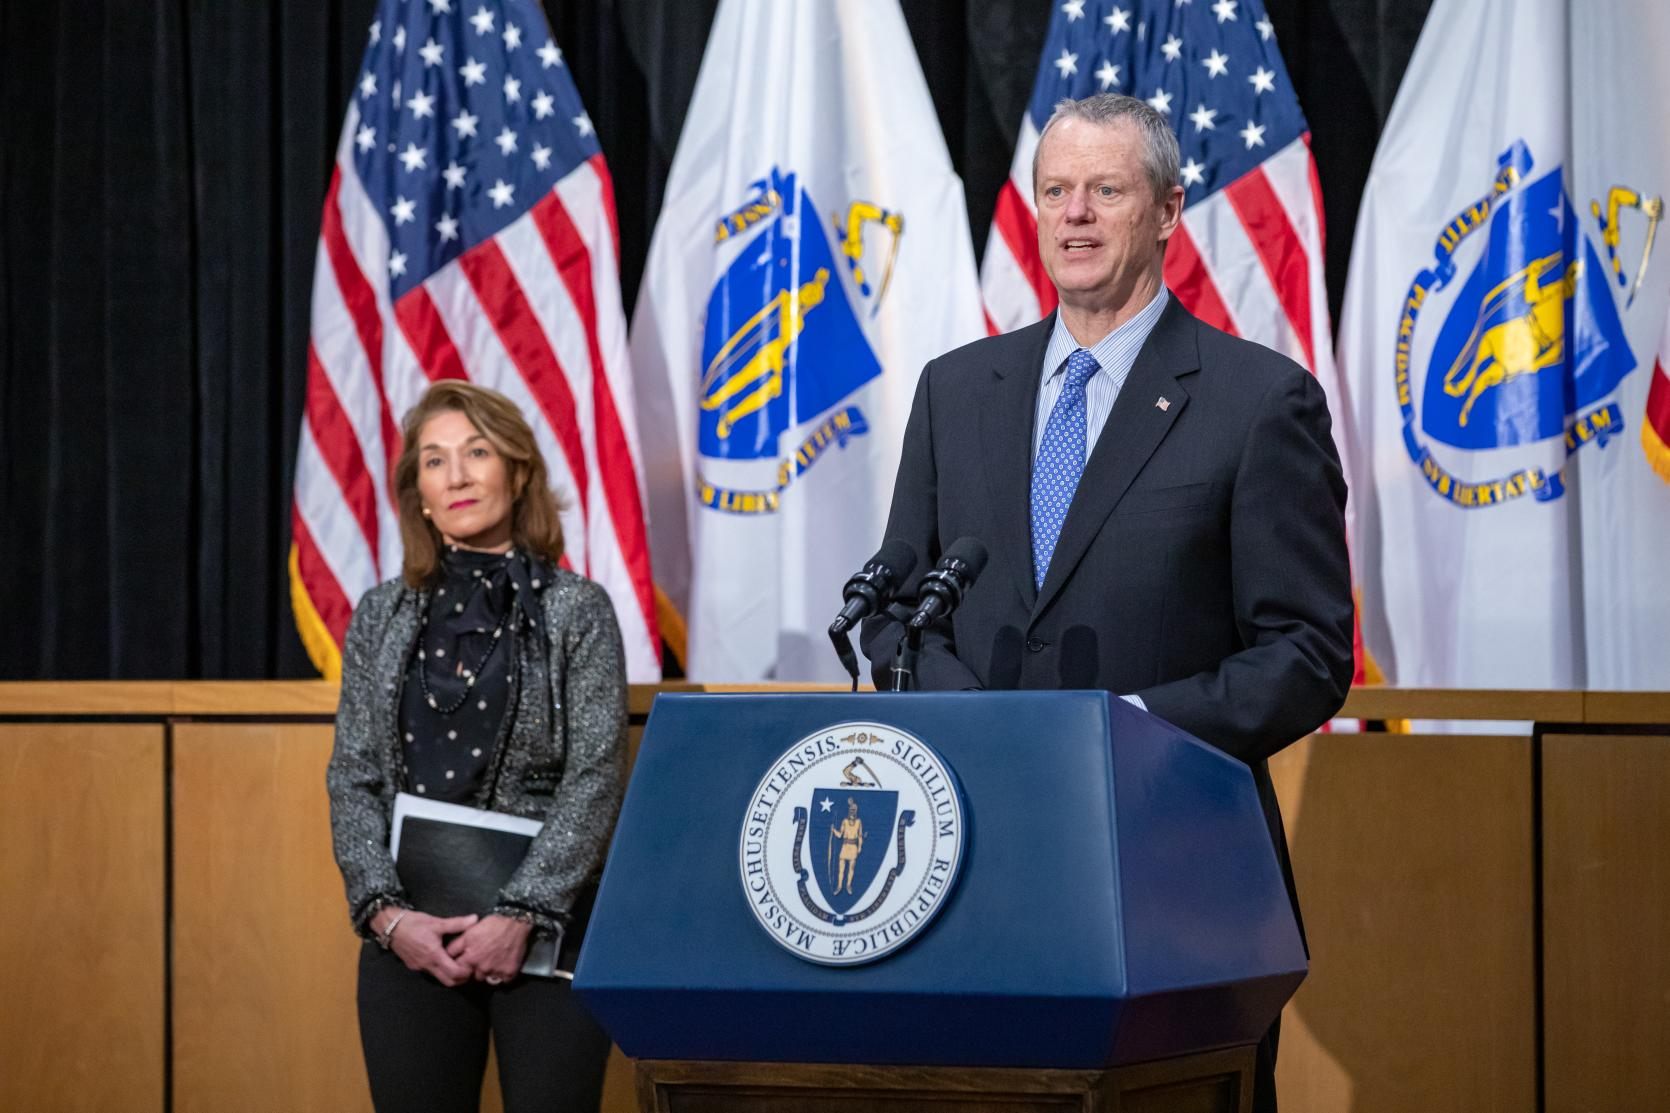 Baker-Polito Administration Outlines Ongoing Steps To Address Homelessness During COVID-19, Announces New Childcare Actions